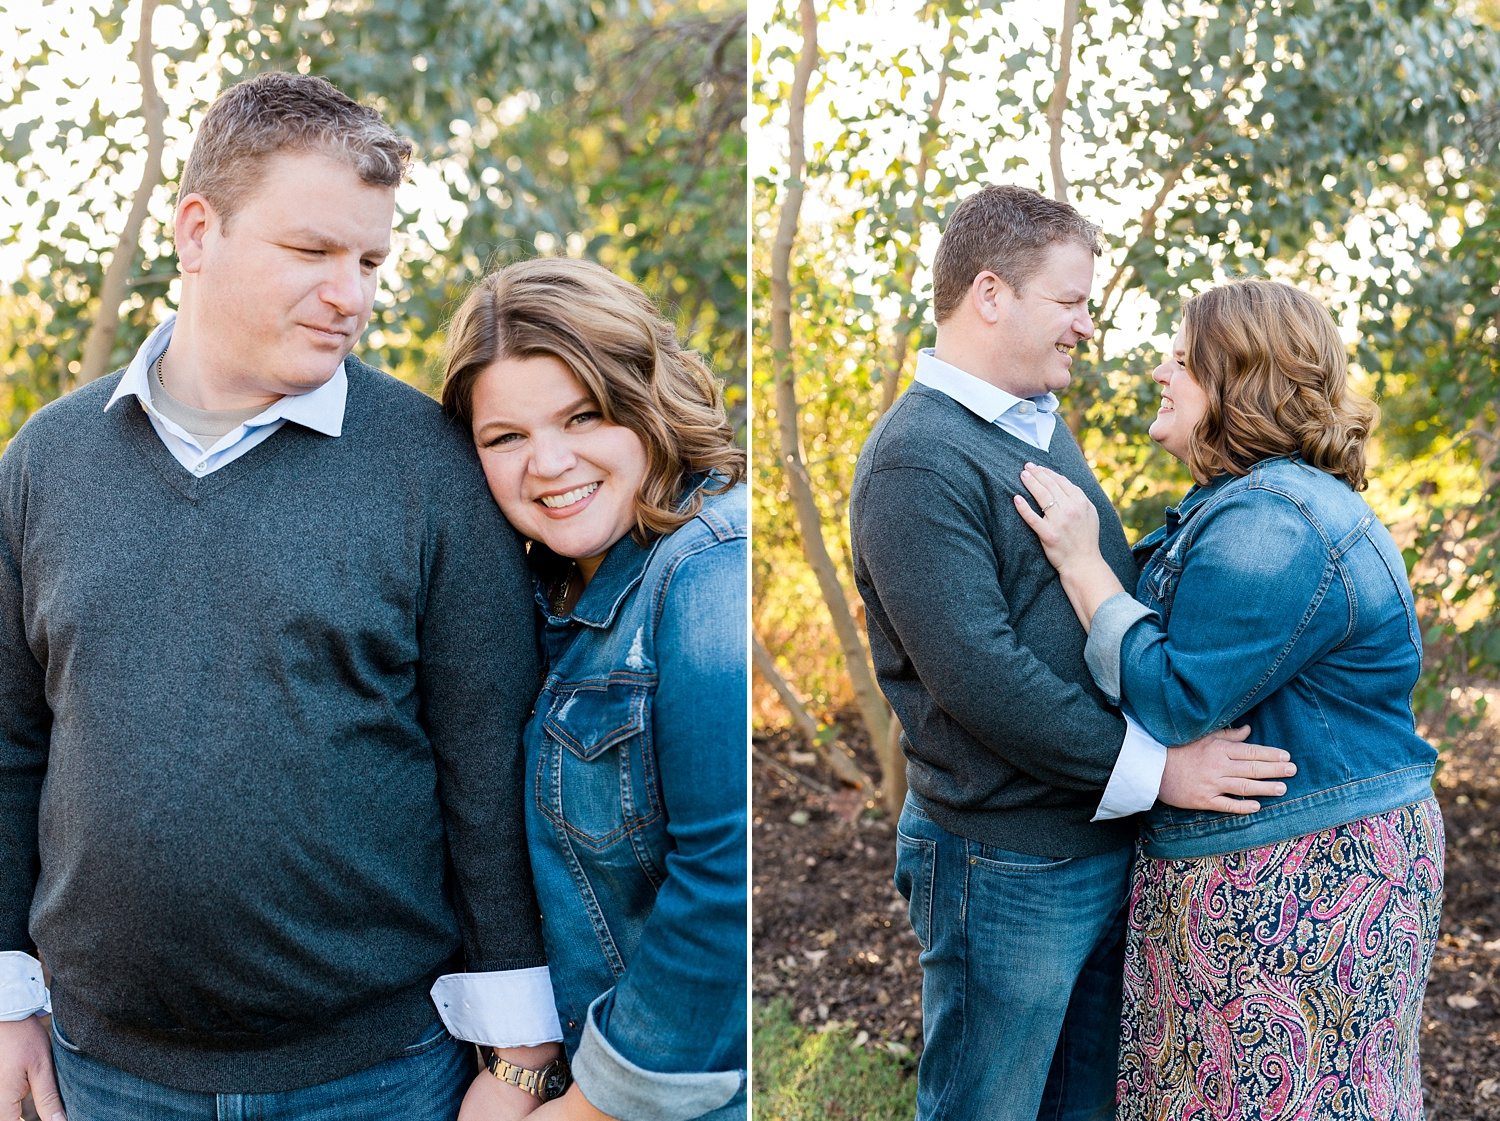 Garden Engagement Session in Raleigh, NC